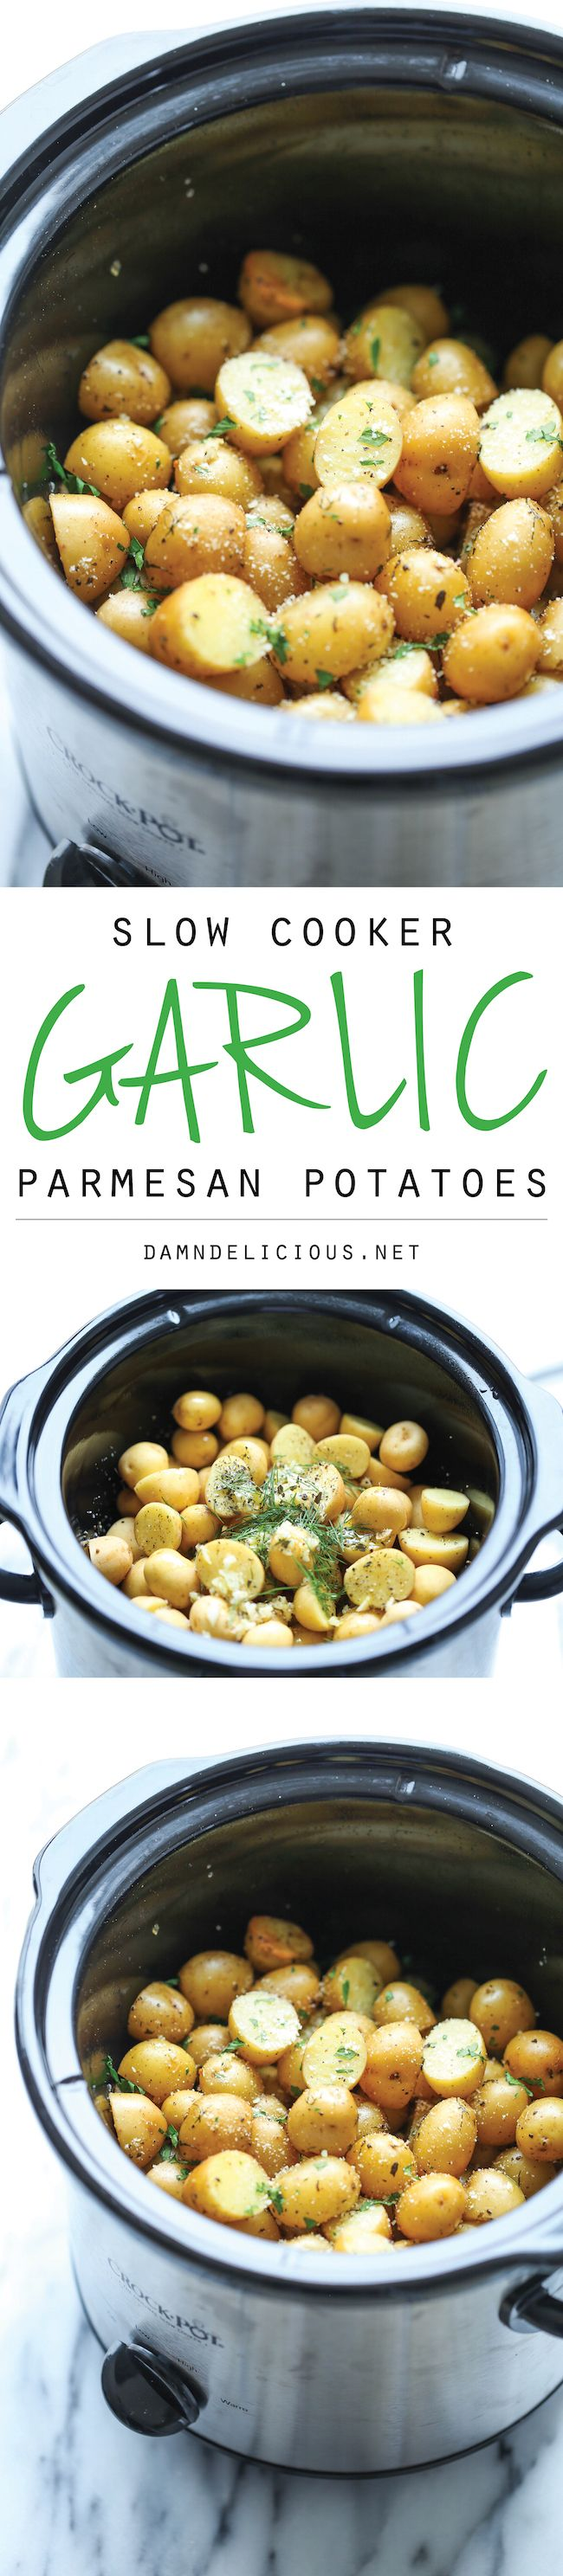 Slow Cooker Garlic Parmesan Potatoes. Crisp, tender potatoes with garlicky parmesan goodness. It's the easiest side dish you will ever make in the crockpot!